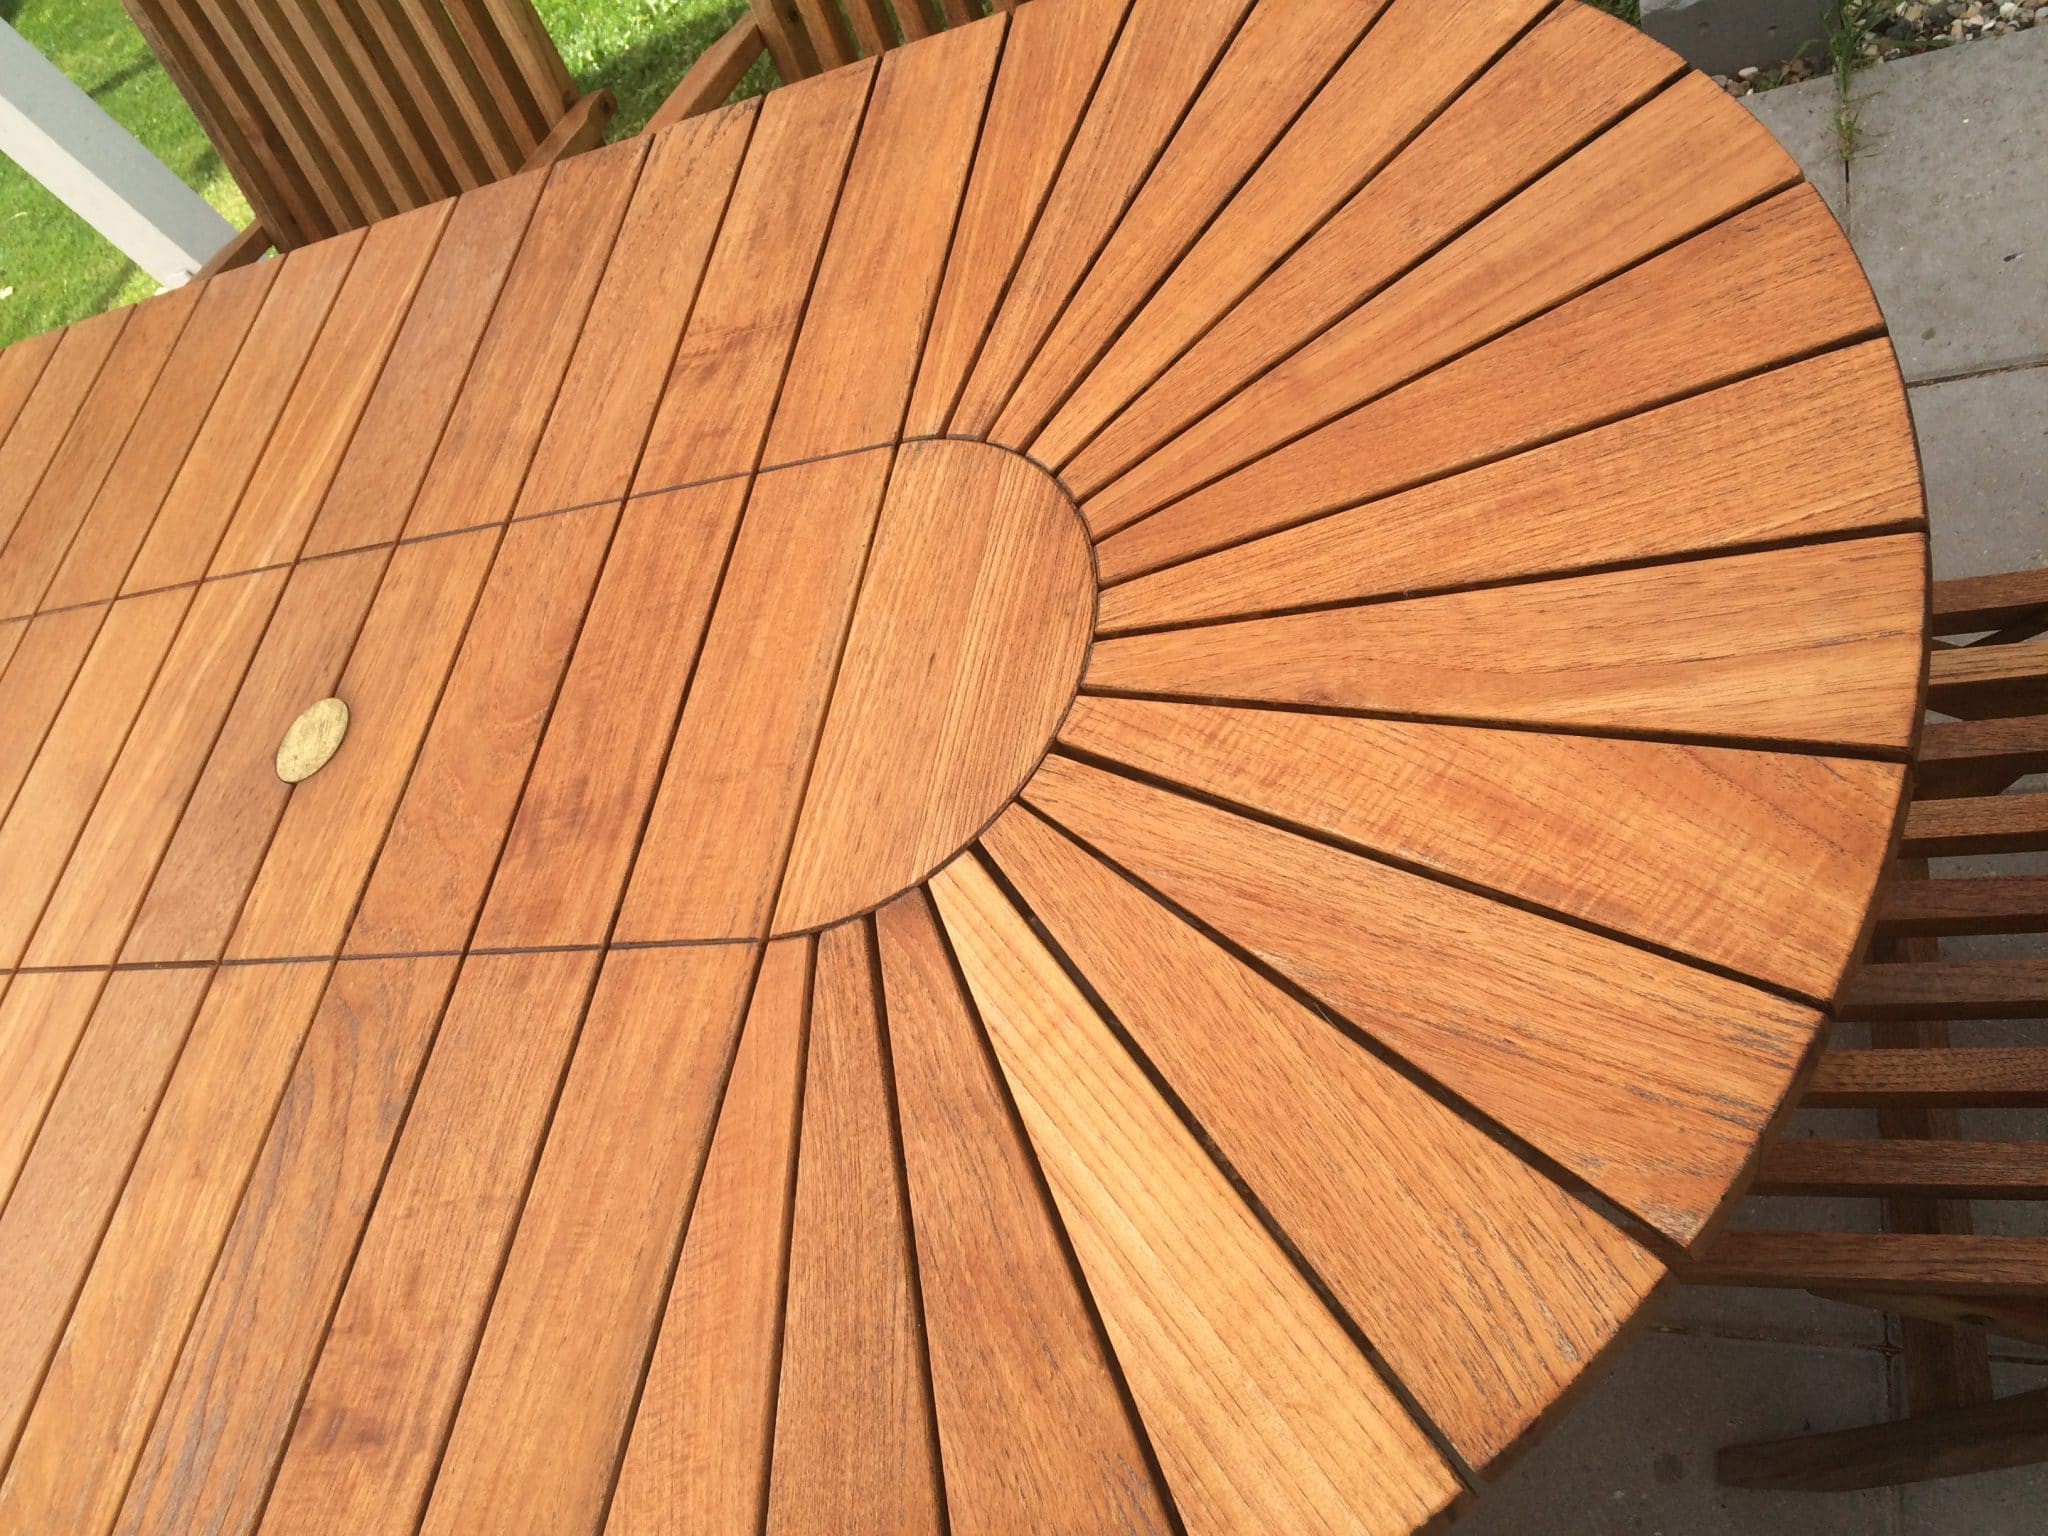 Garden table restored with Teak Olje